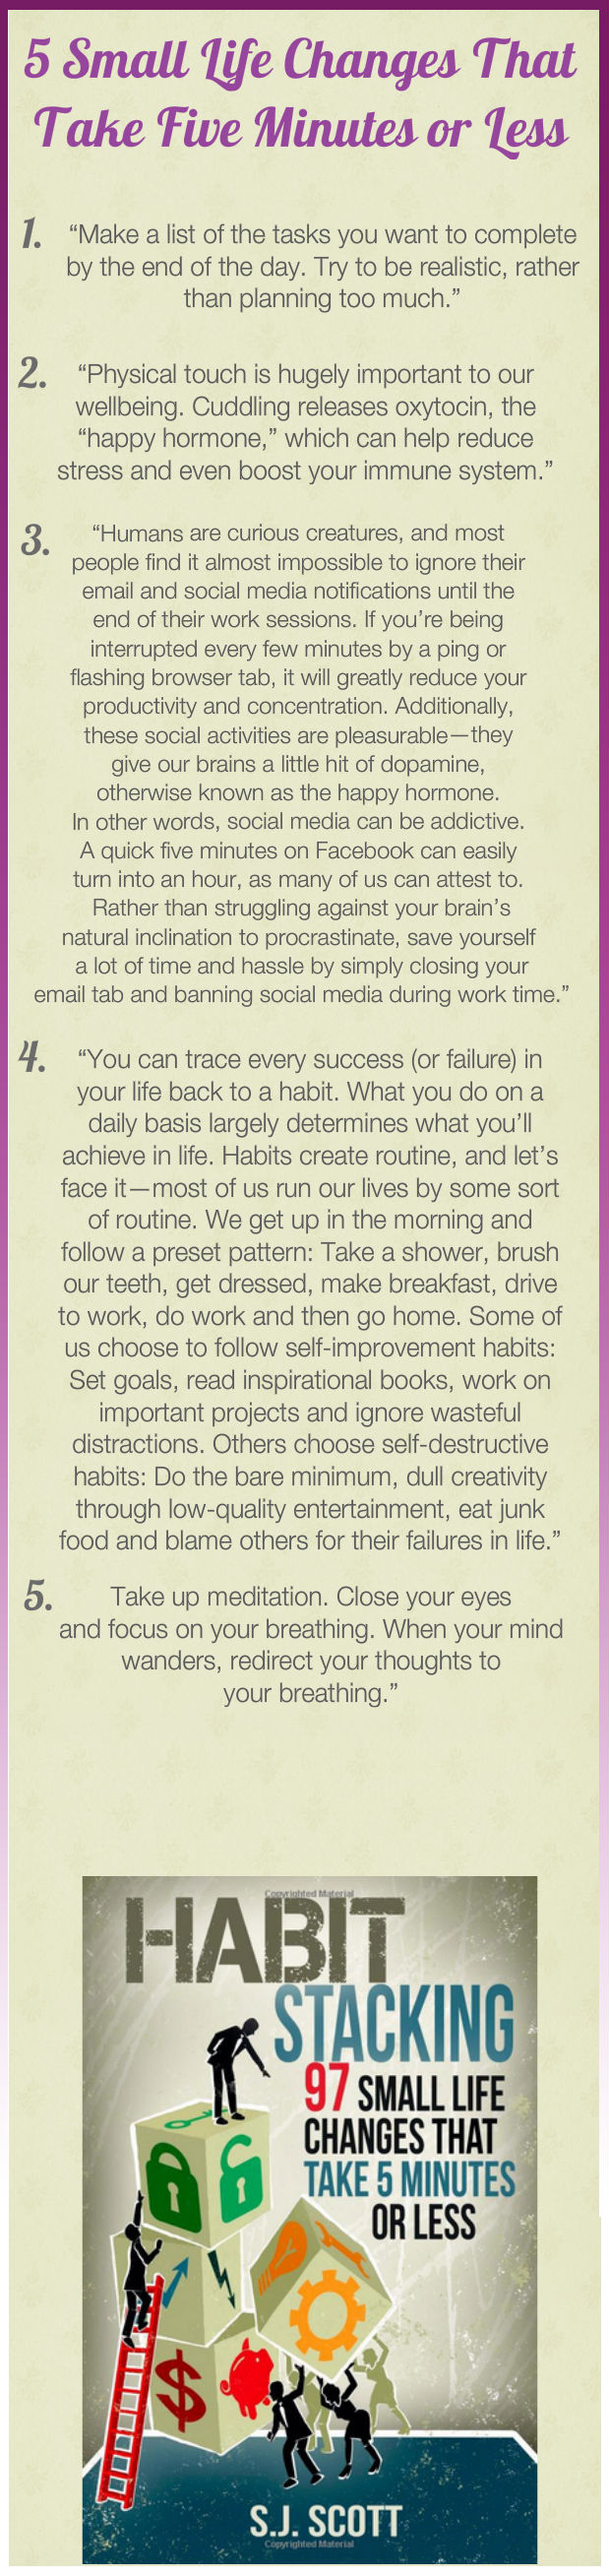 Daily Tips And Motivation Habit Stacking 97 Small Life